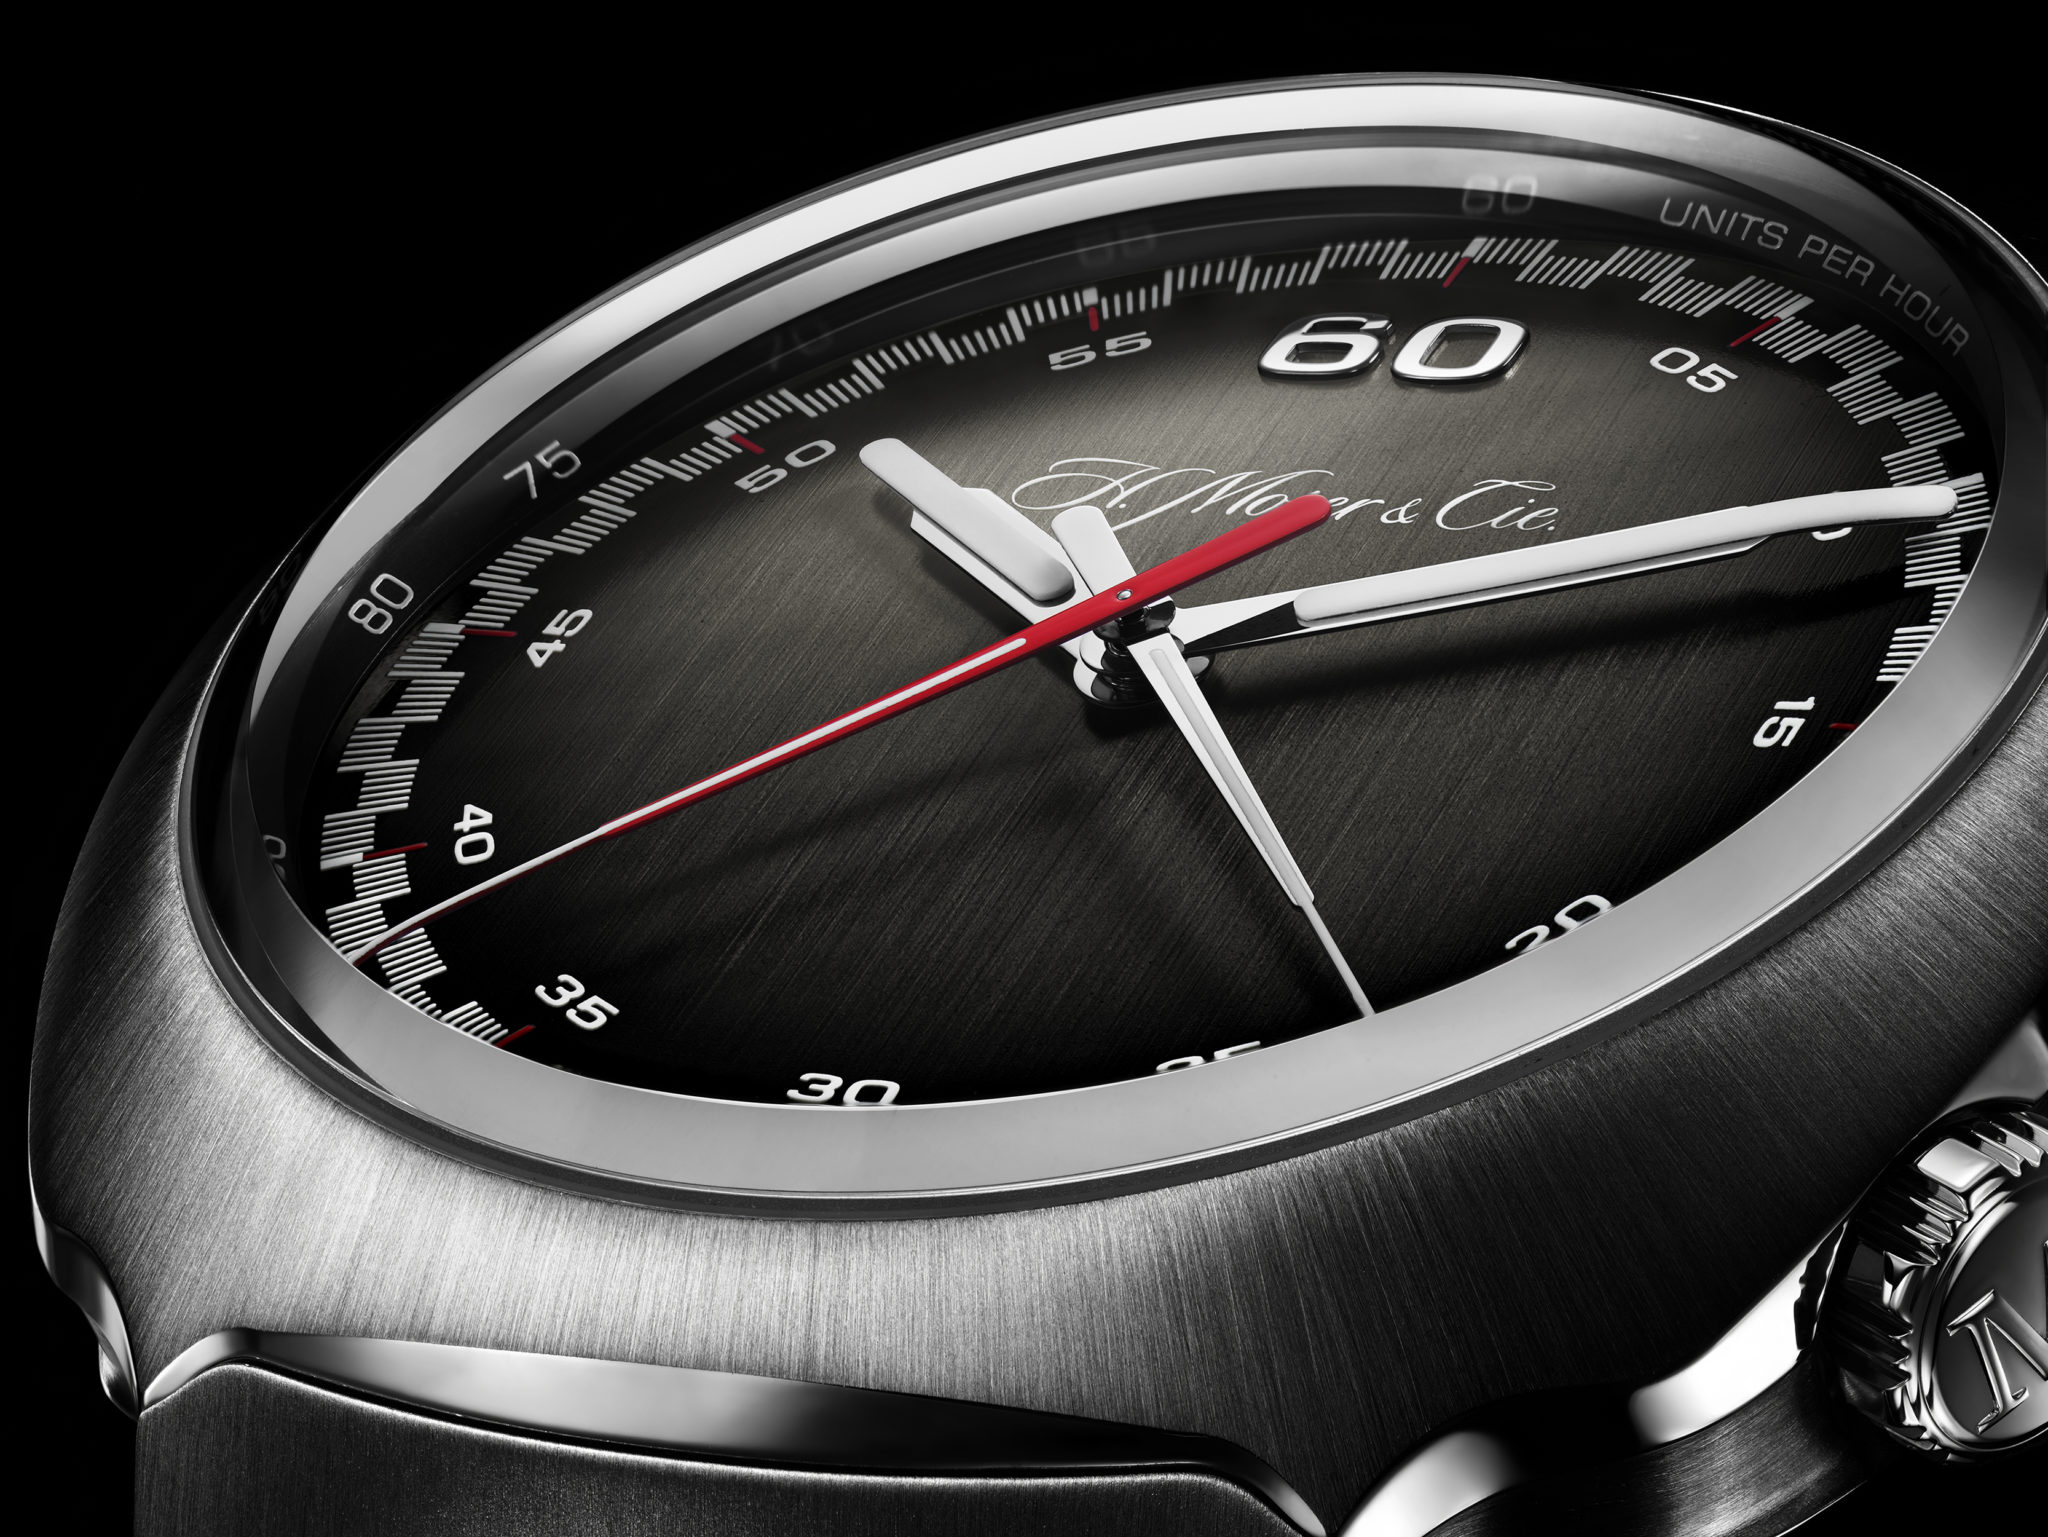 h moser cie enters crowded market for premium steel sports watches watchpro usa h moser cie enters crowded market for premium steel sports watches watchpro usa